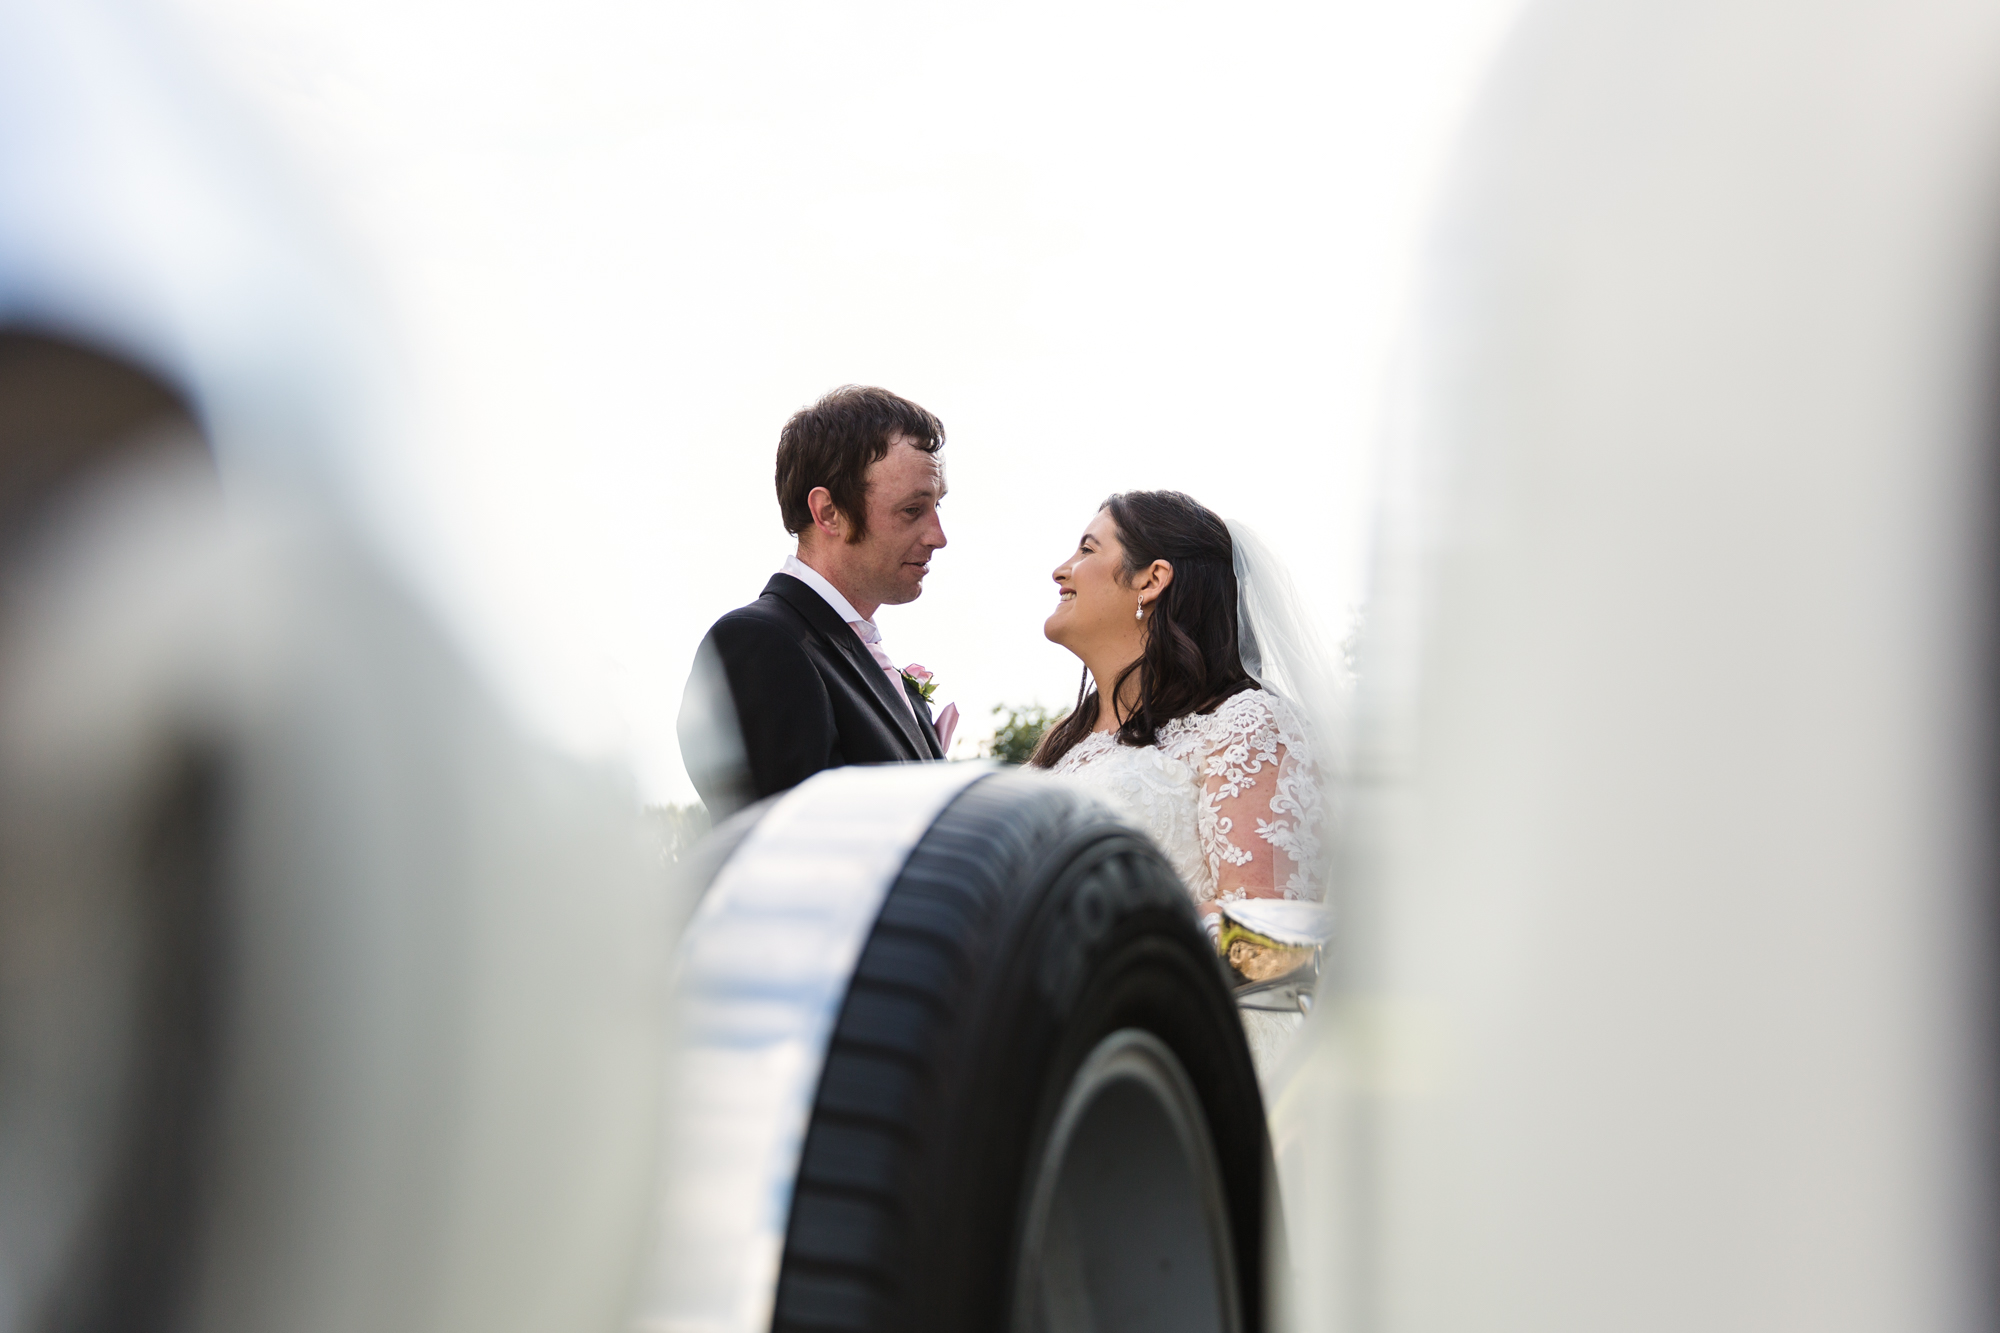 bride and groom portrait with wedding car at St Martins church Caerphilly